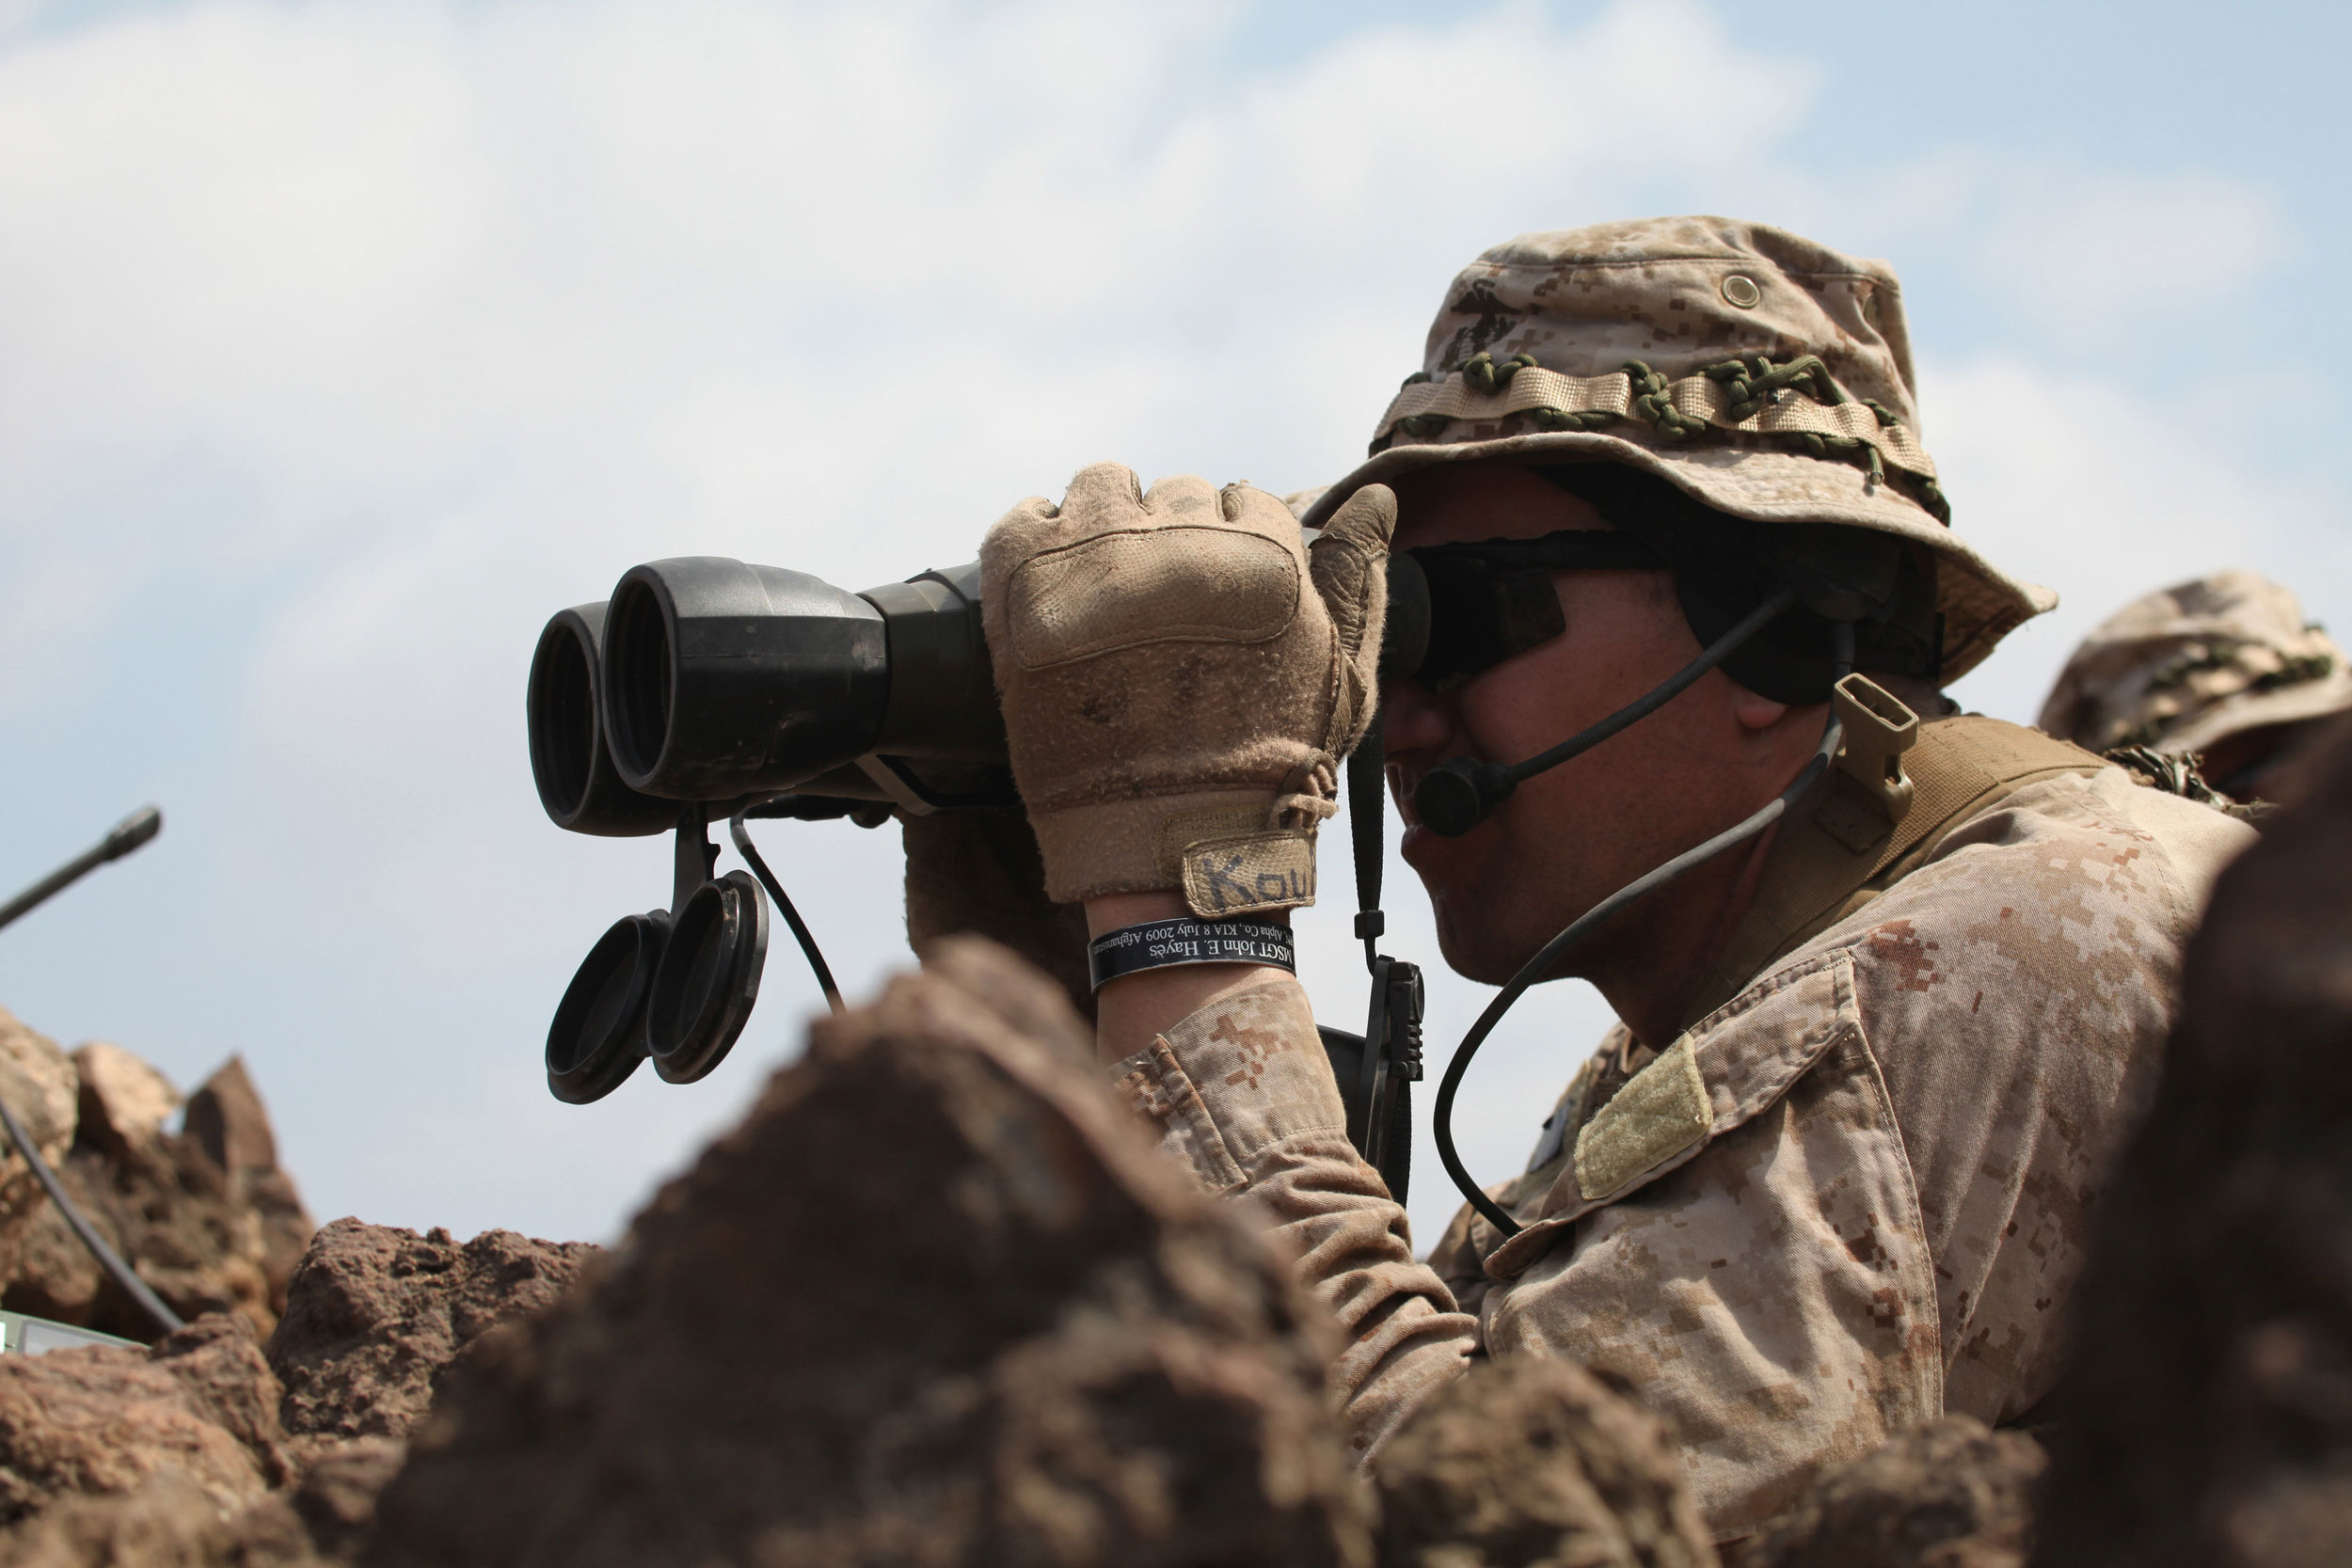 Scouting became primarily a military activity. - This photo shows a Marine Corps Force Recon operating.